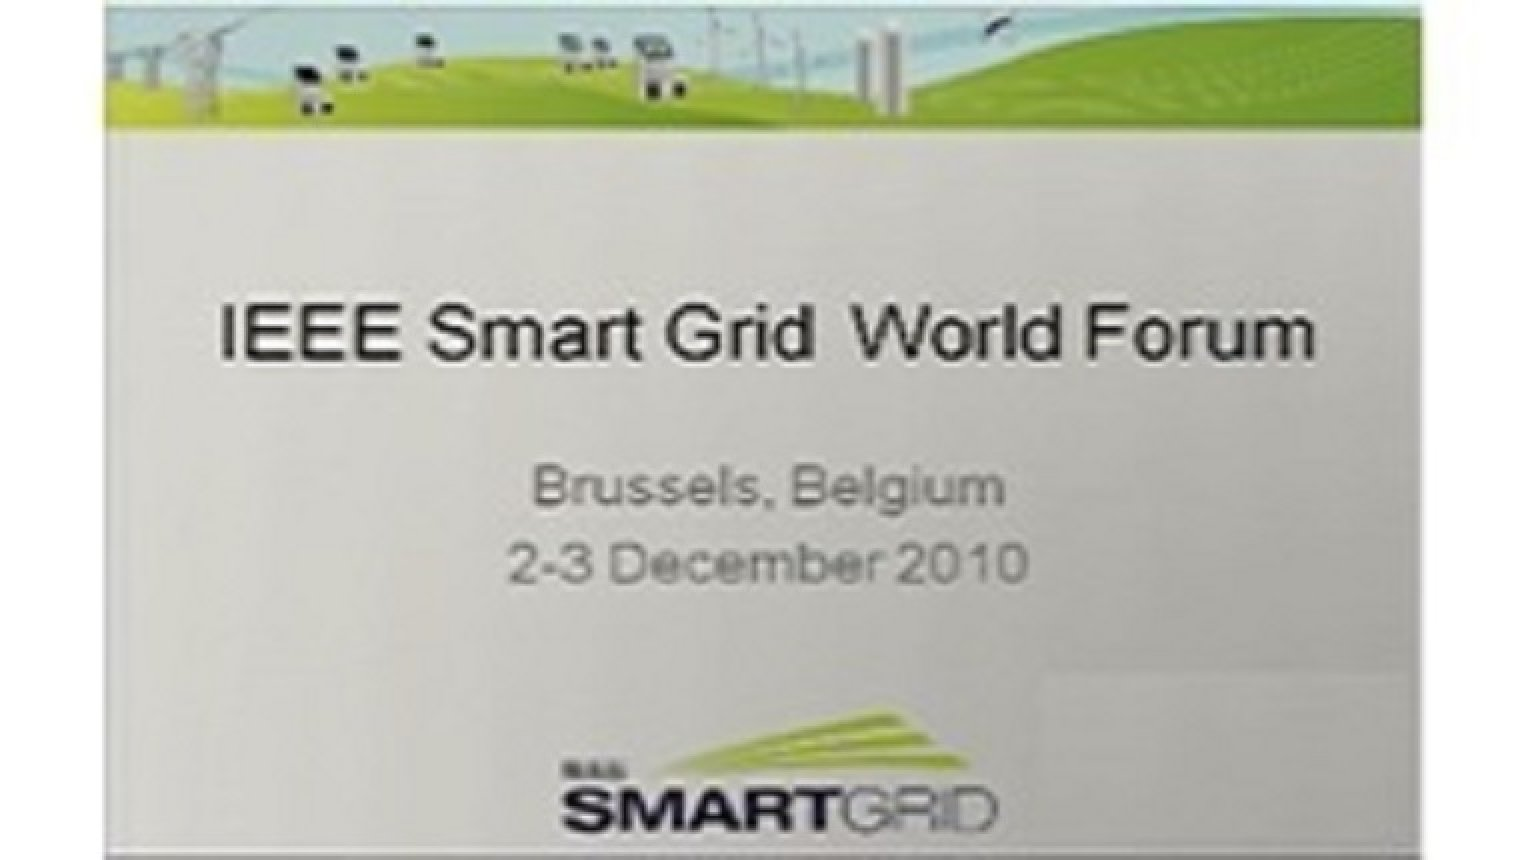 IEEE Smart Grid World Forum - Session 7 Panel Discussion